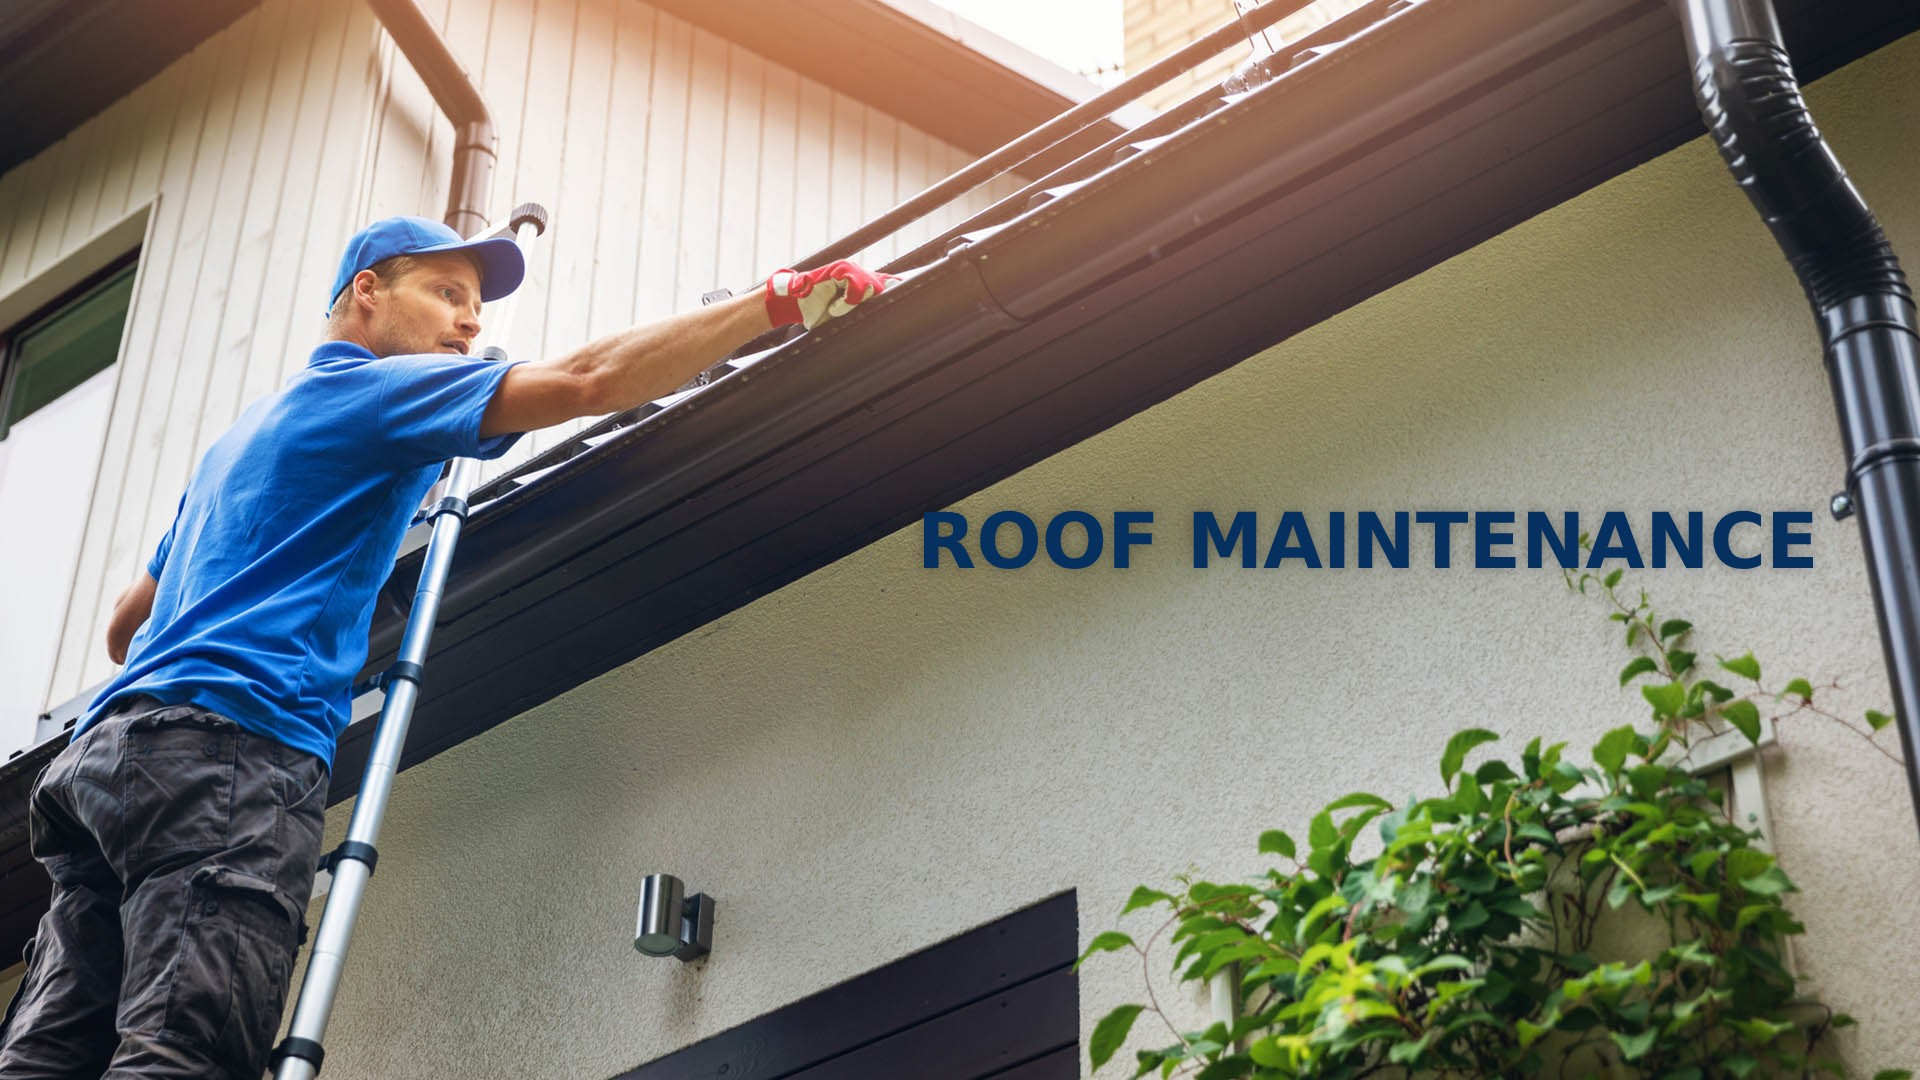 HOW OFTEN SHOULD YOUR ROOF BE MAINTAINED?